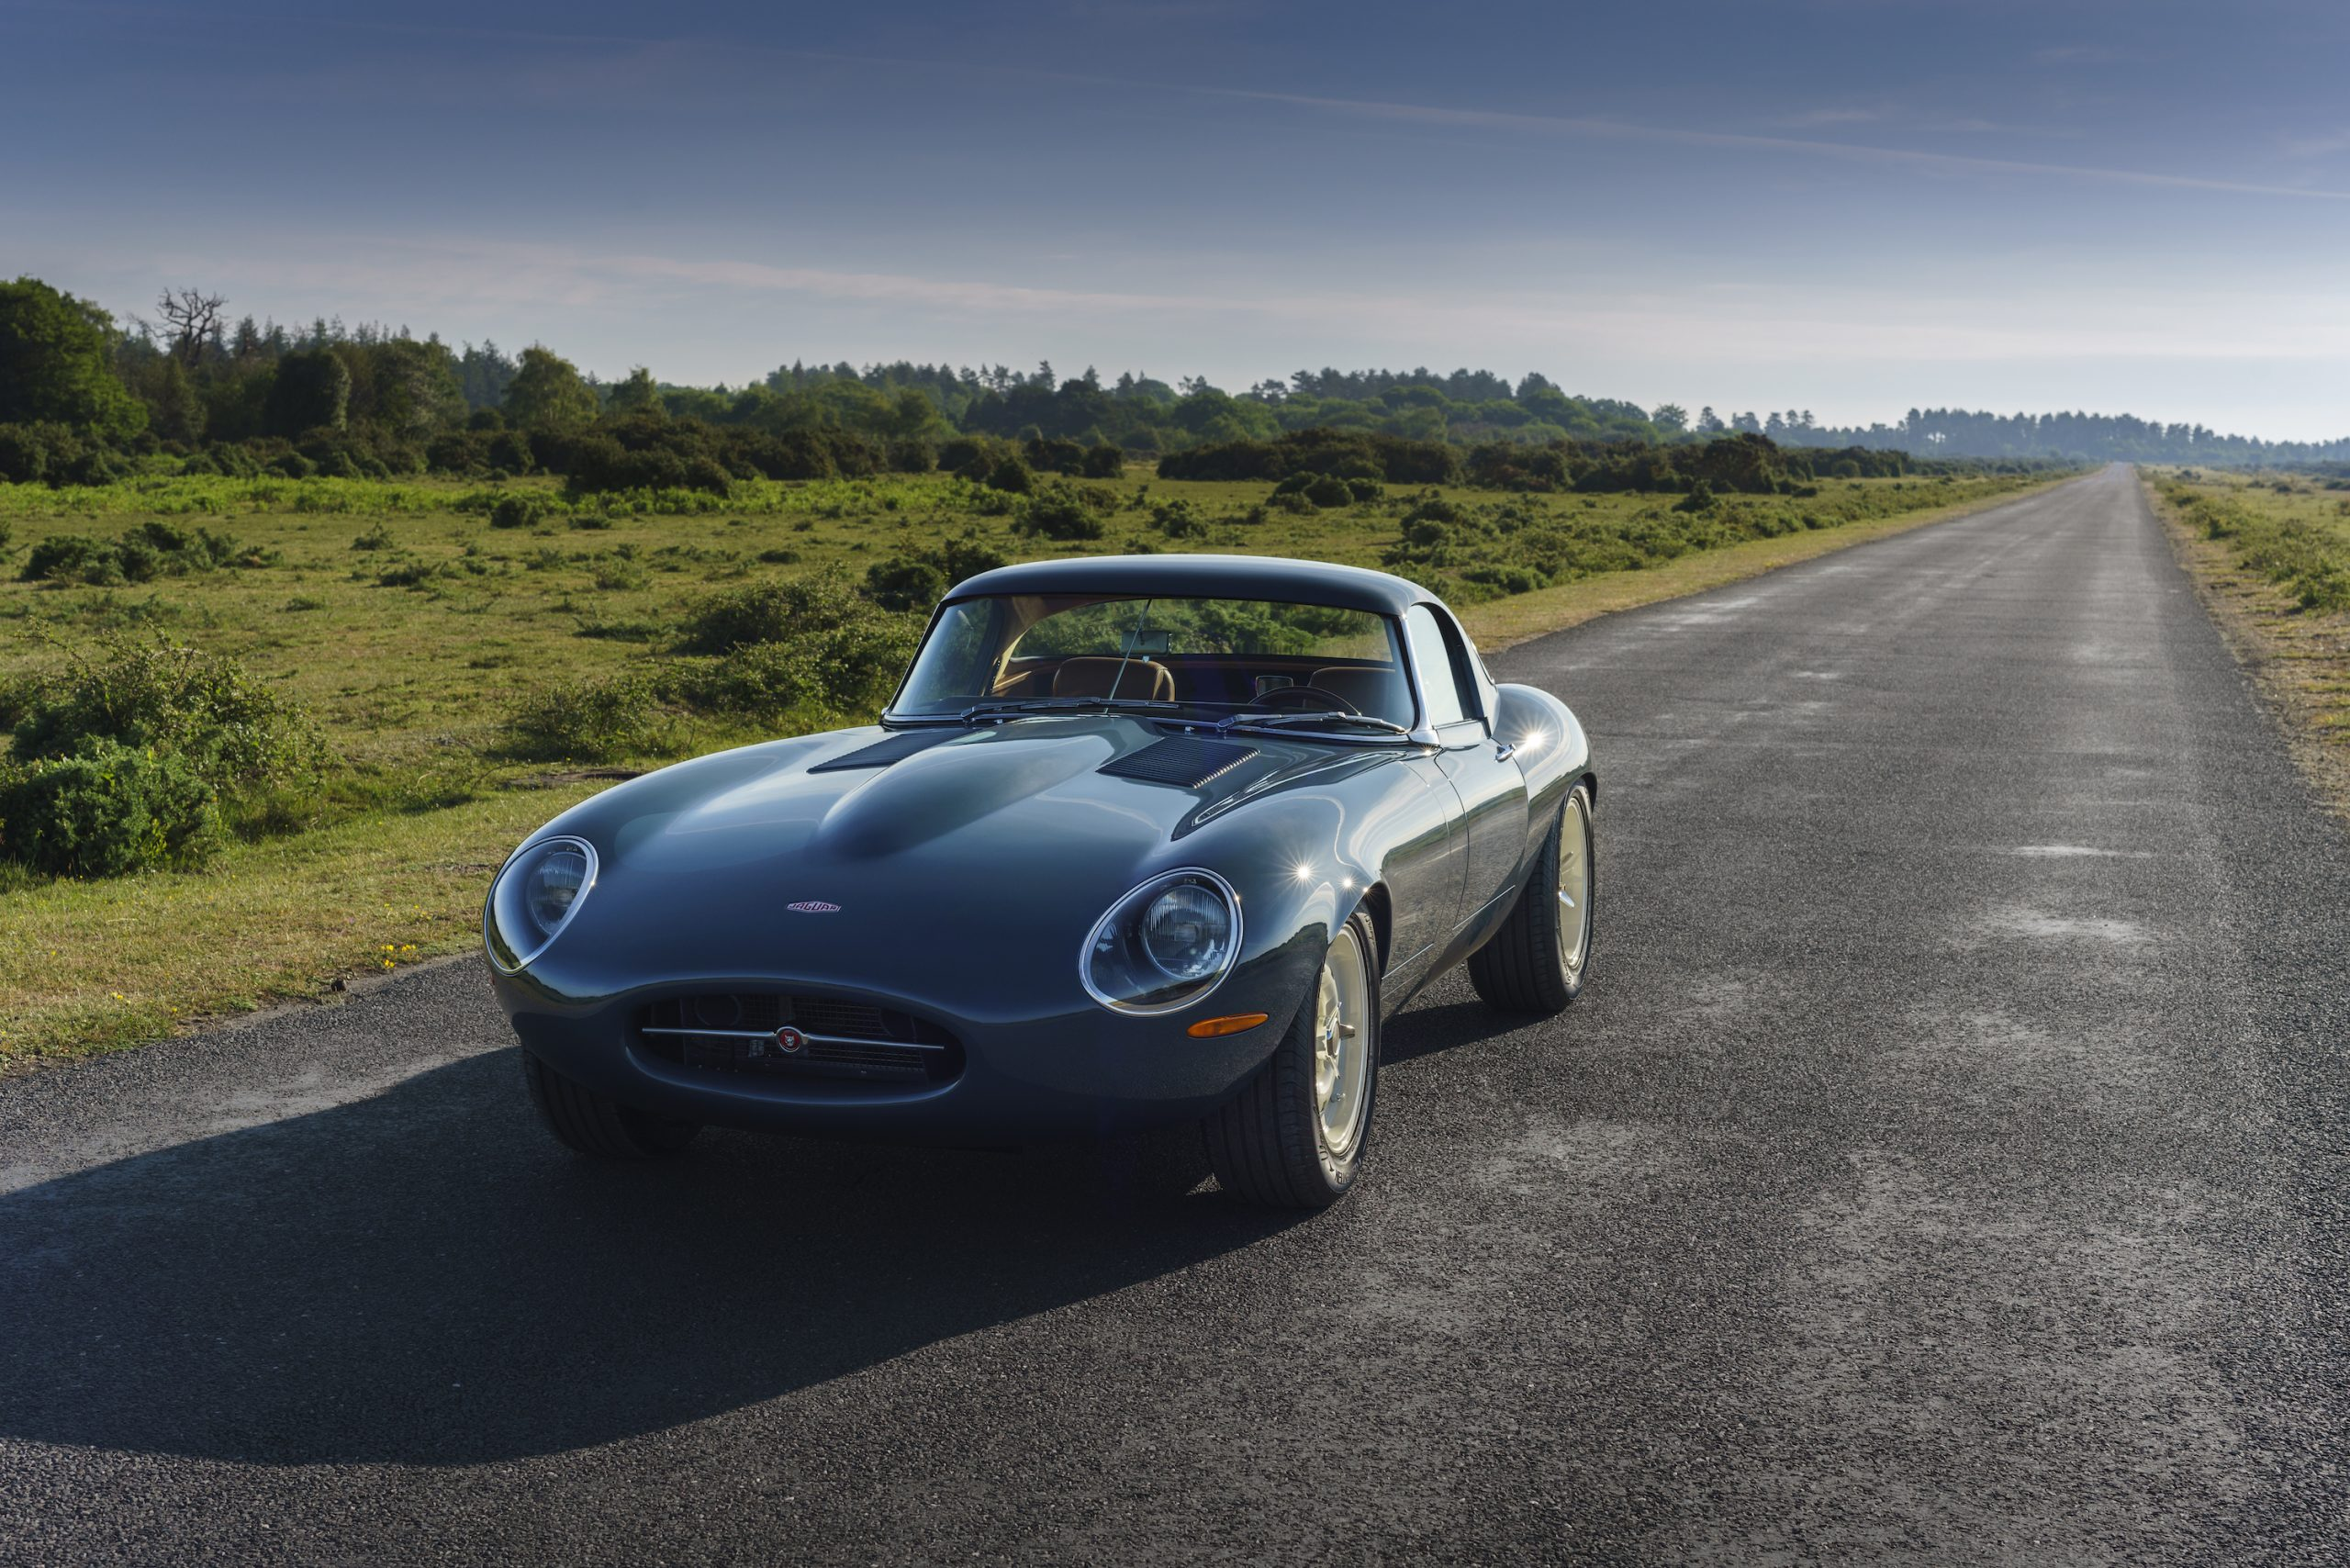 Eagle E-type Lightweight GT Front Three-Quarter